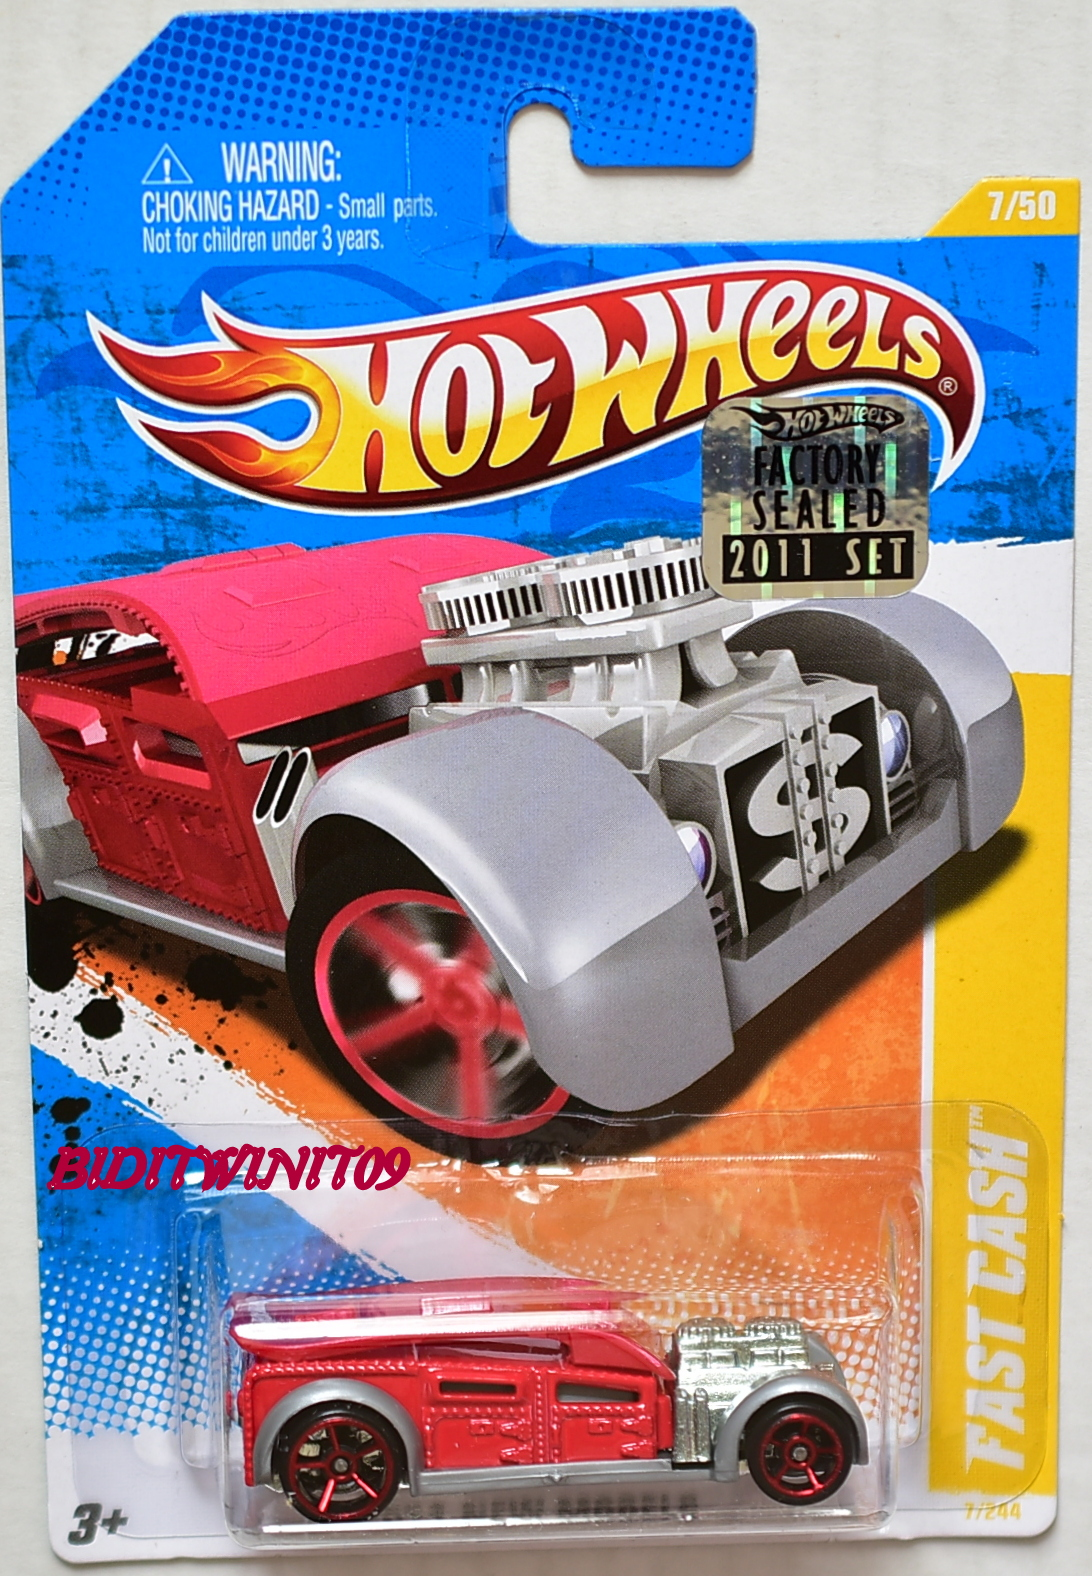 HOT WHEELS 2011 NEW MODELS FAST CASH #7/50 RED FACTORY SEALED